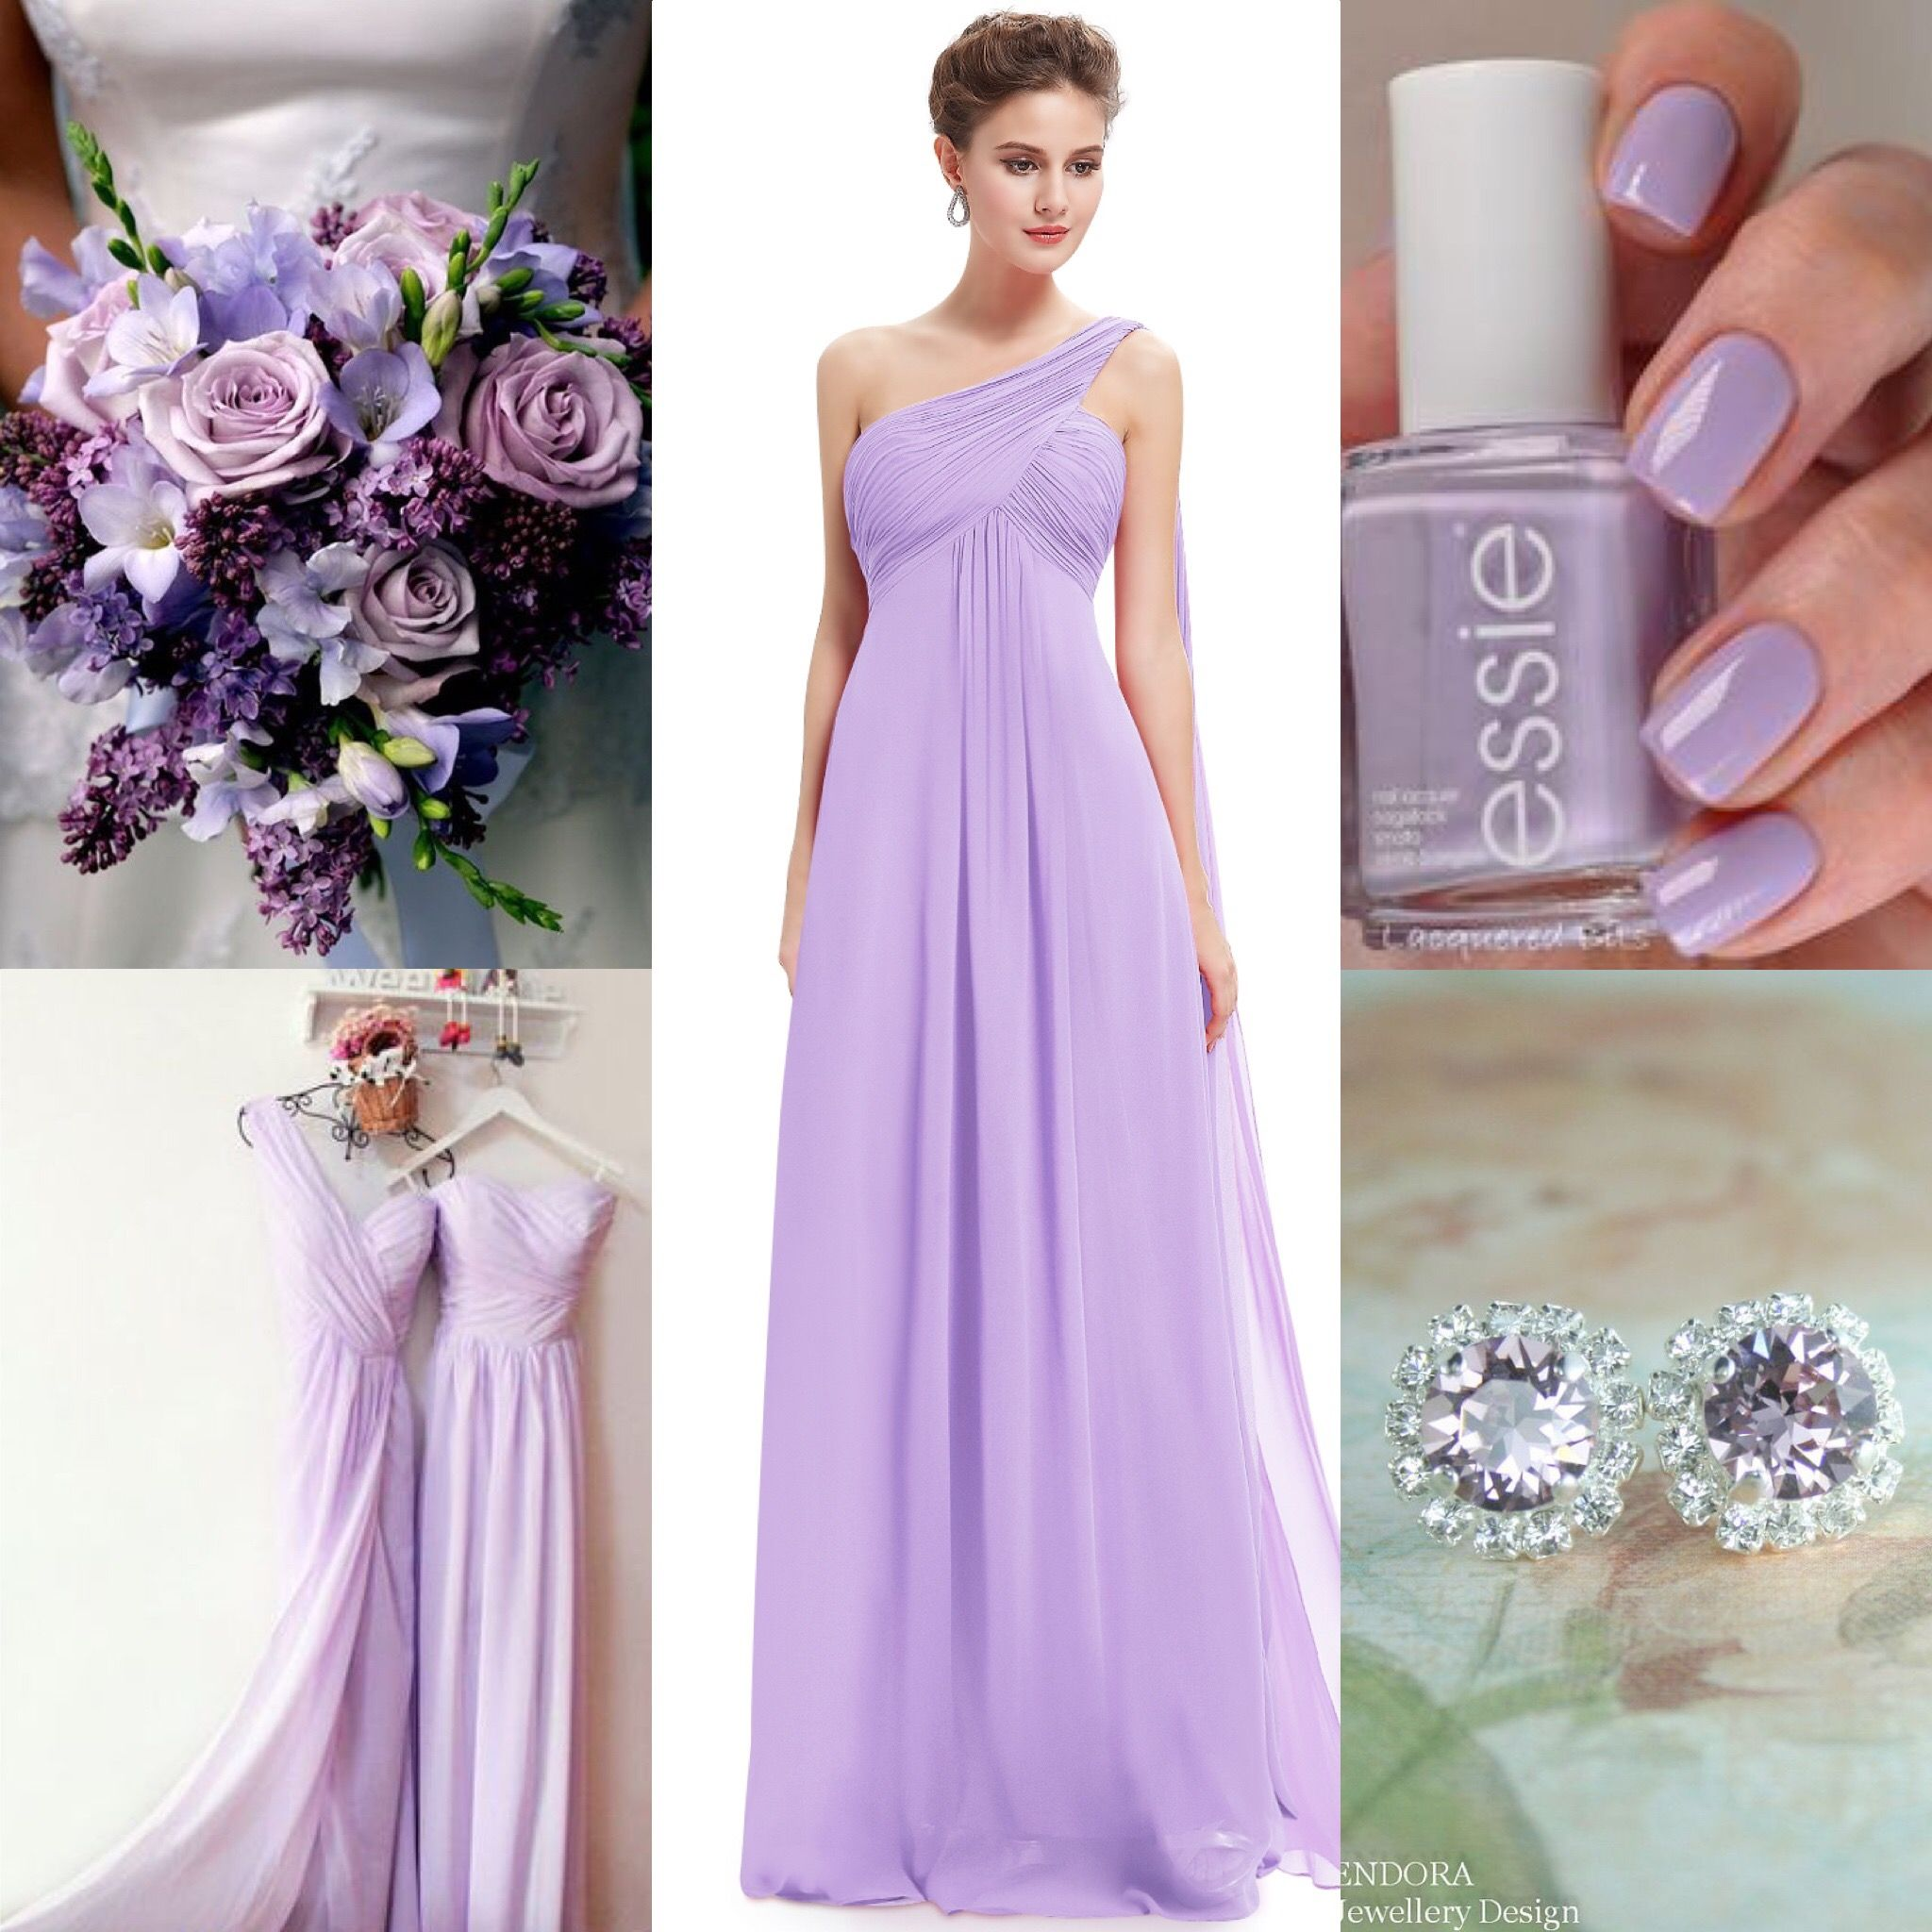 The perfect bridesmaids dress our customers are raving about! One ...